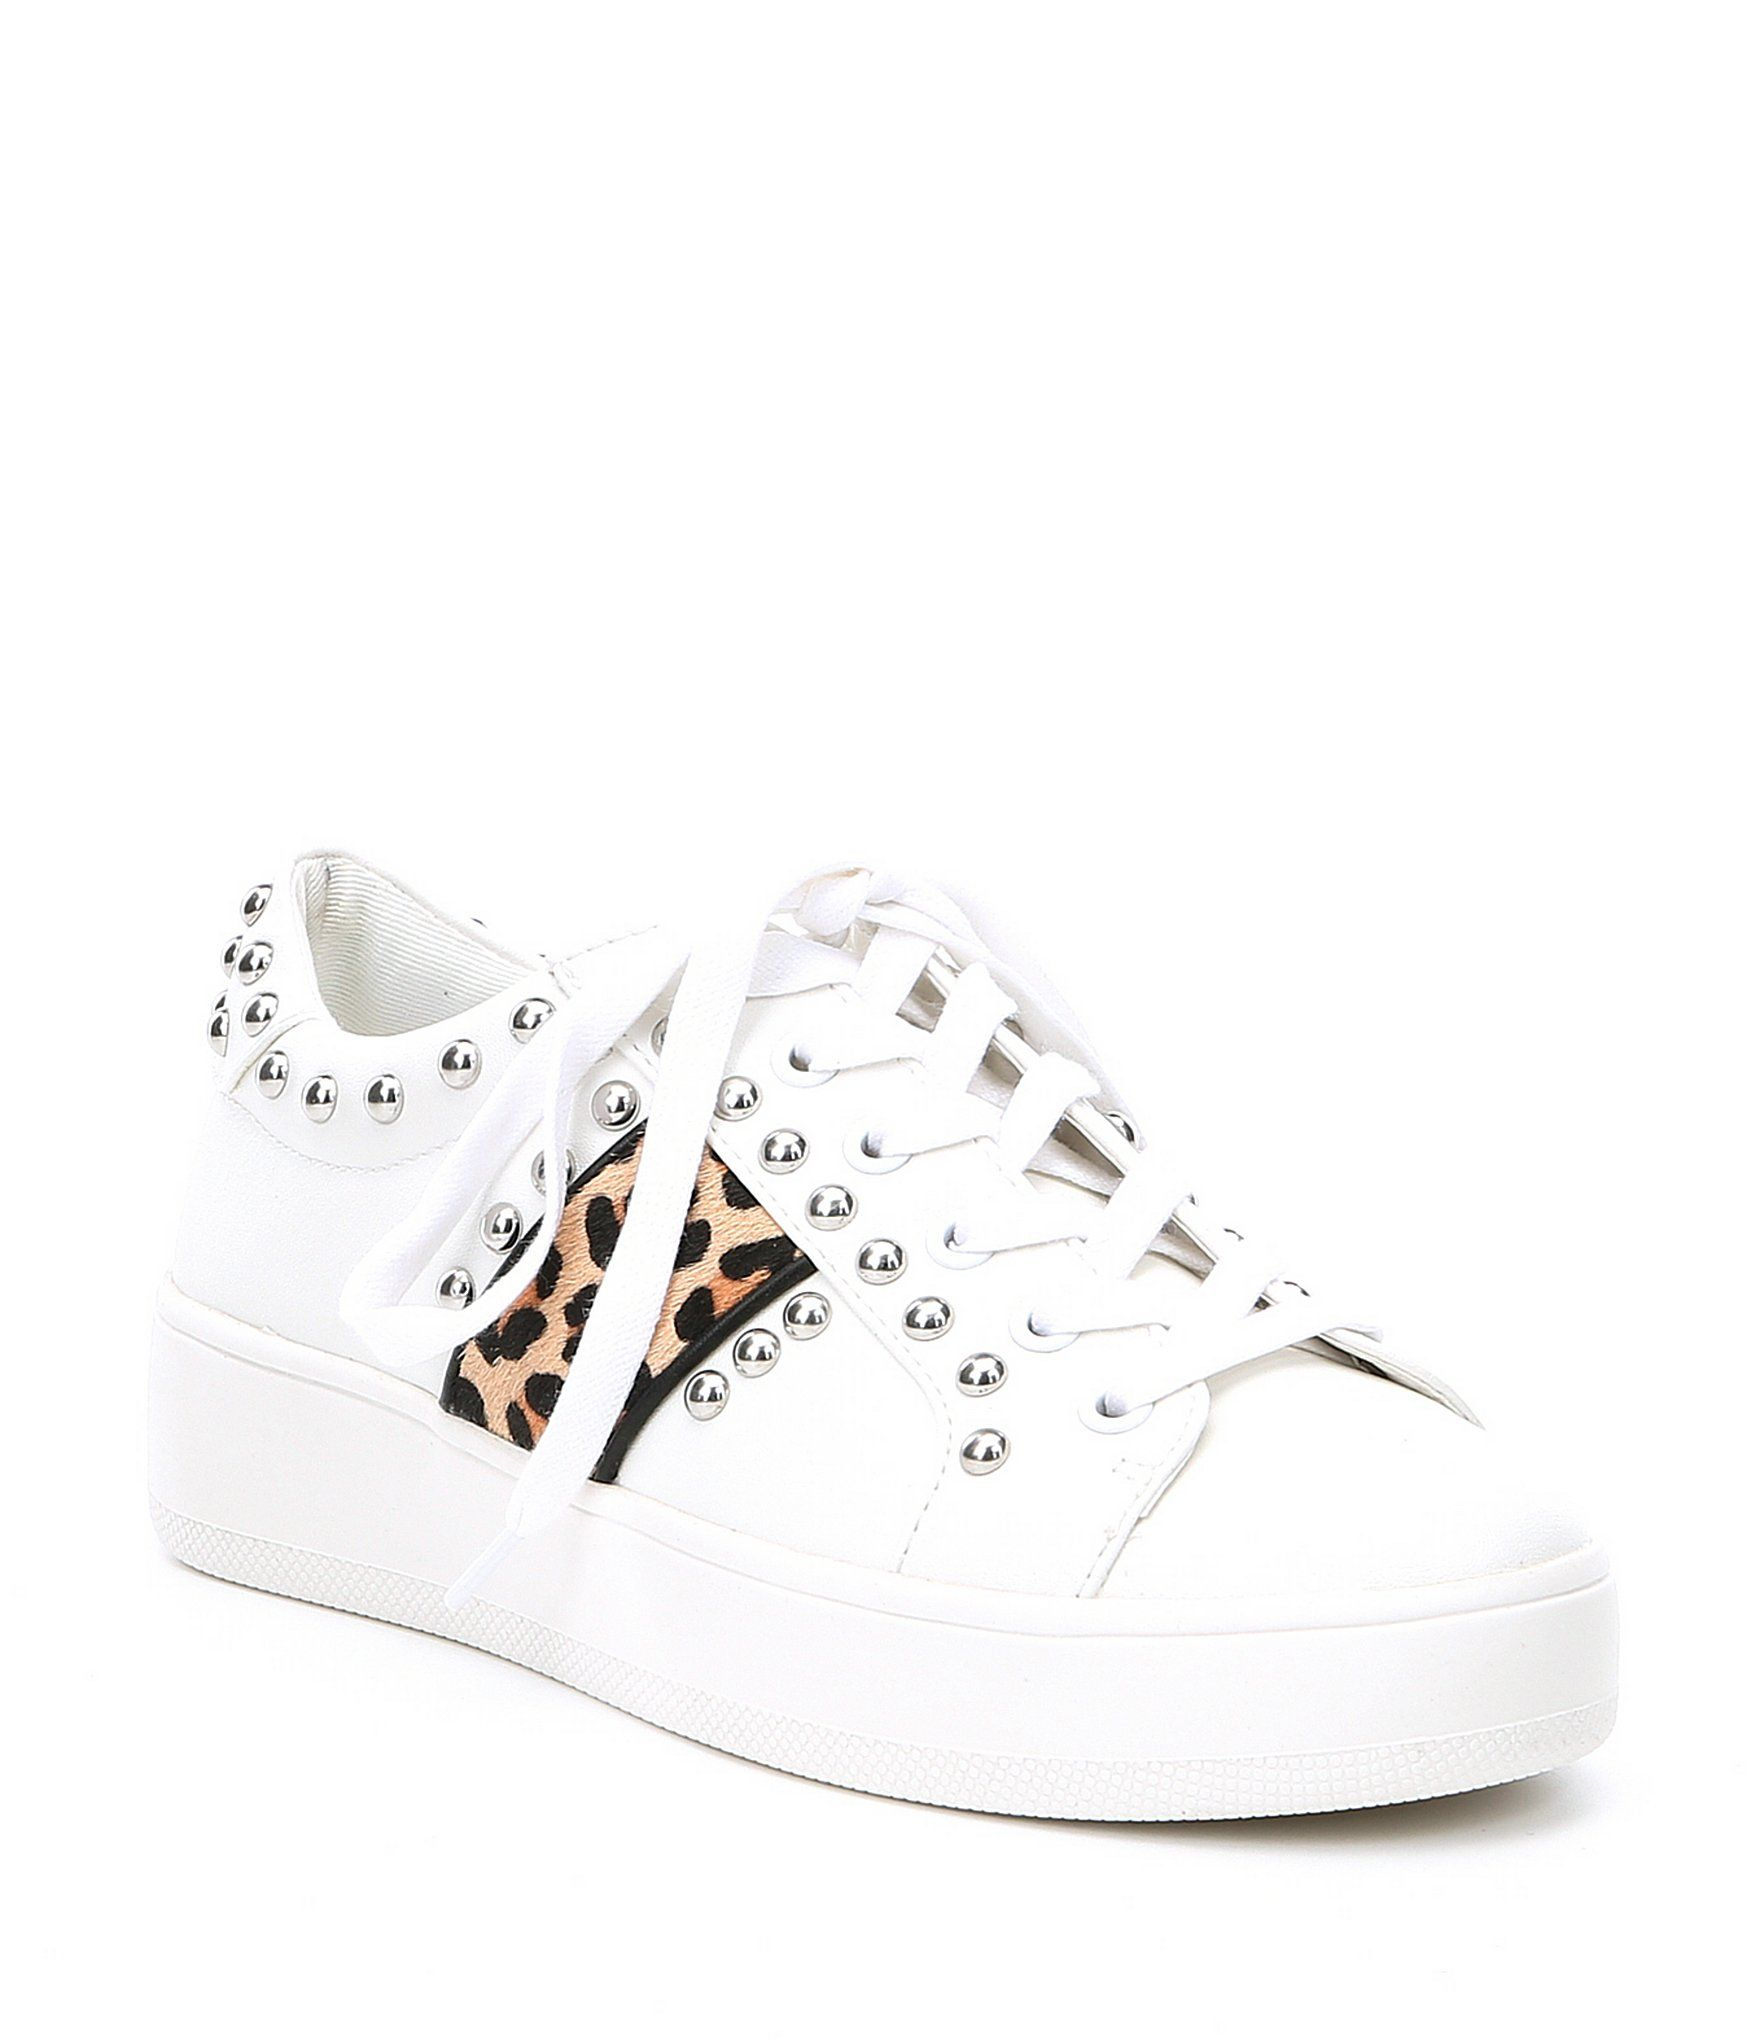 022d62b2fce Shop for Steve Madden Belle Leopard Studded Sneakers at Dillards.com. Visit  Dillards.com to find clothing